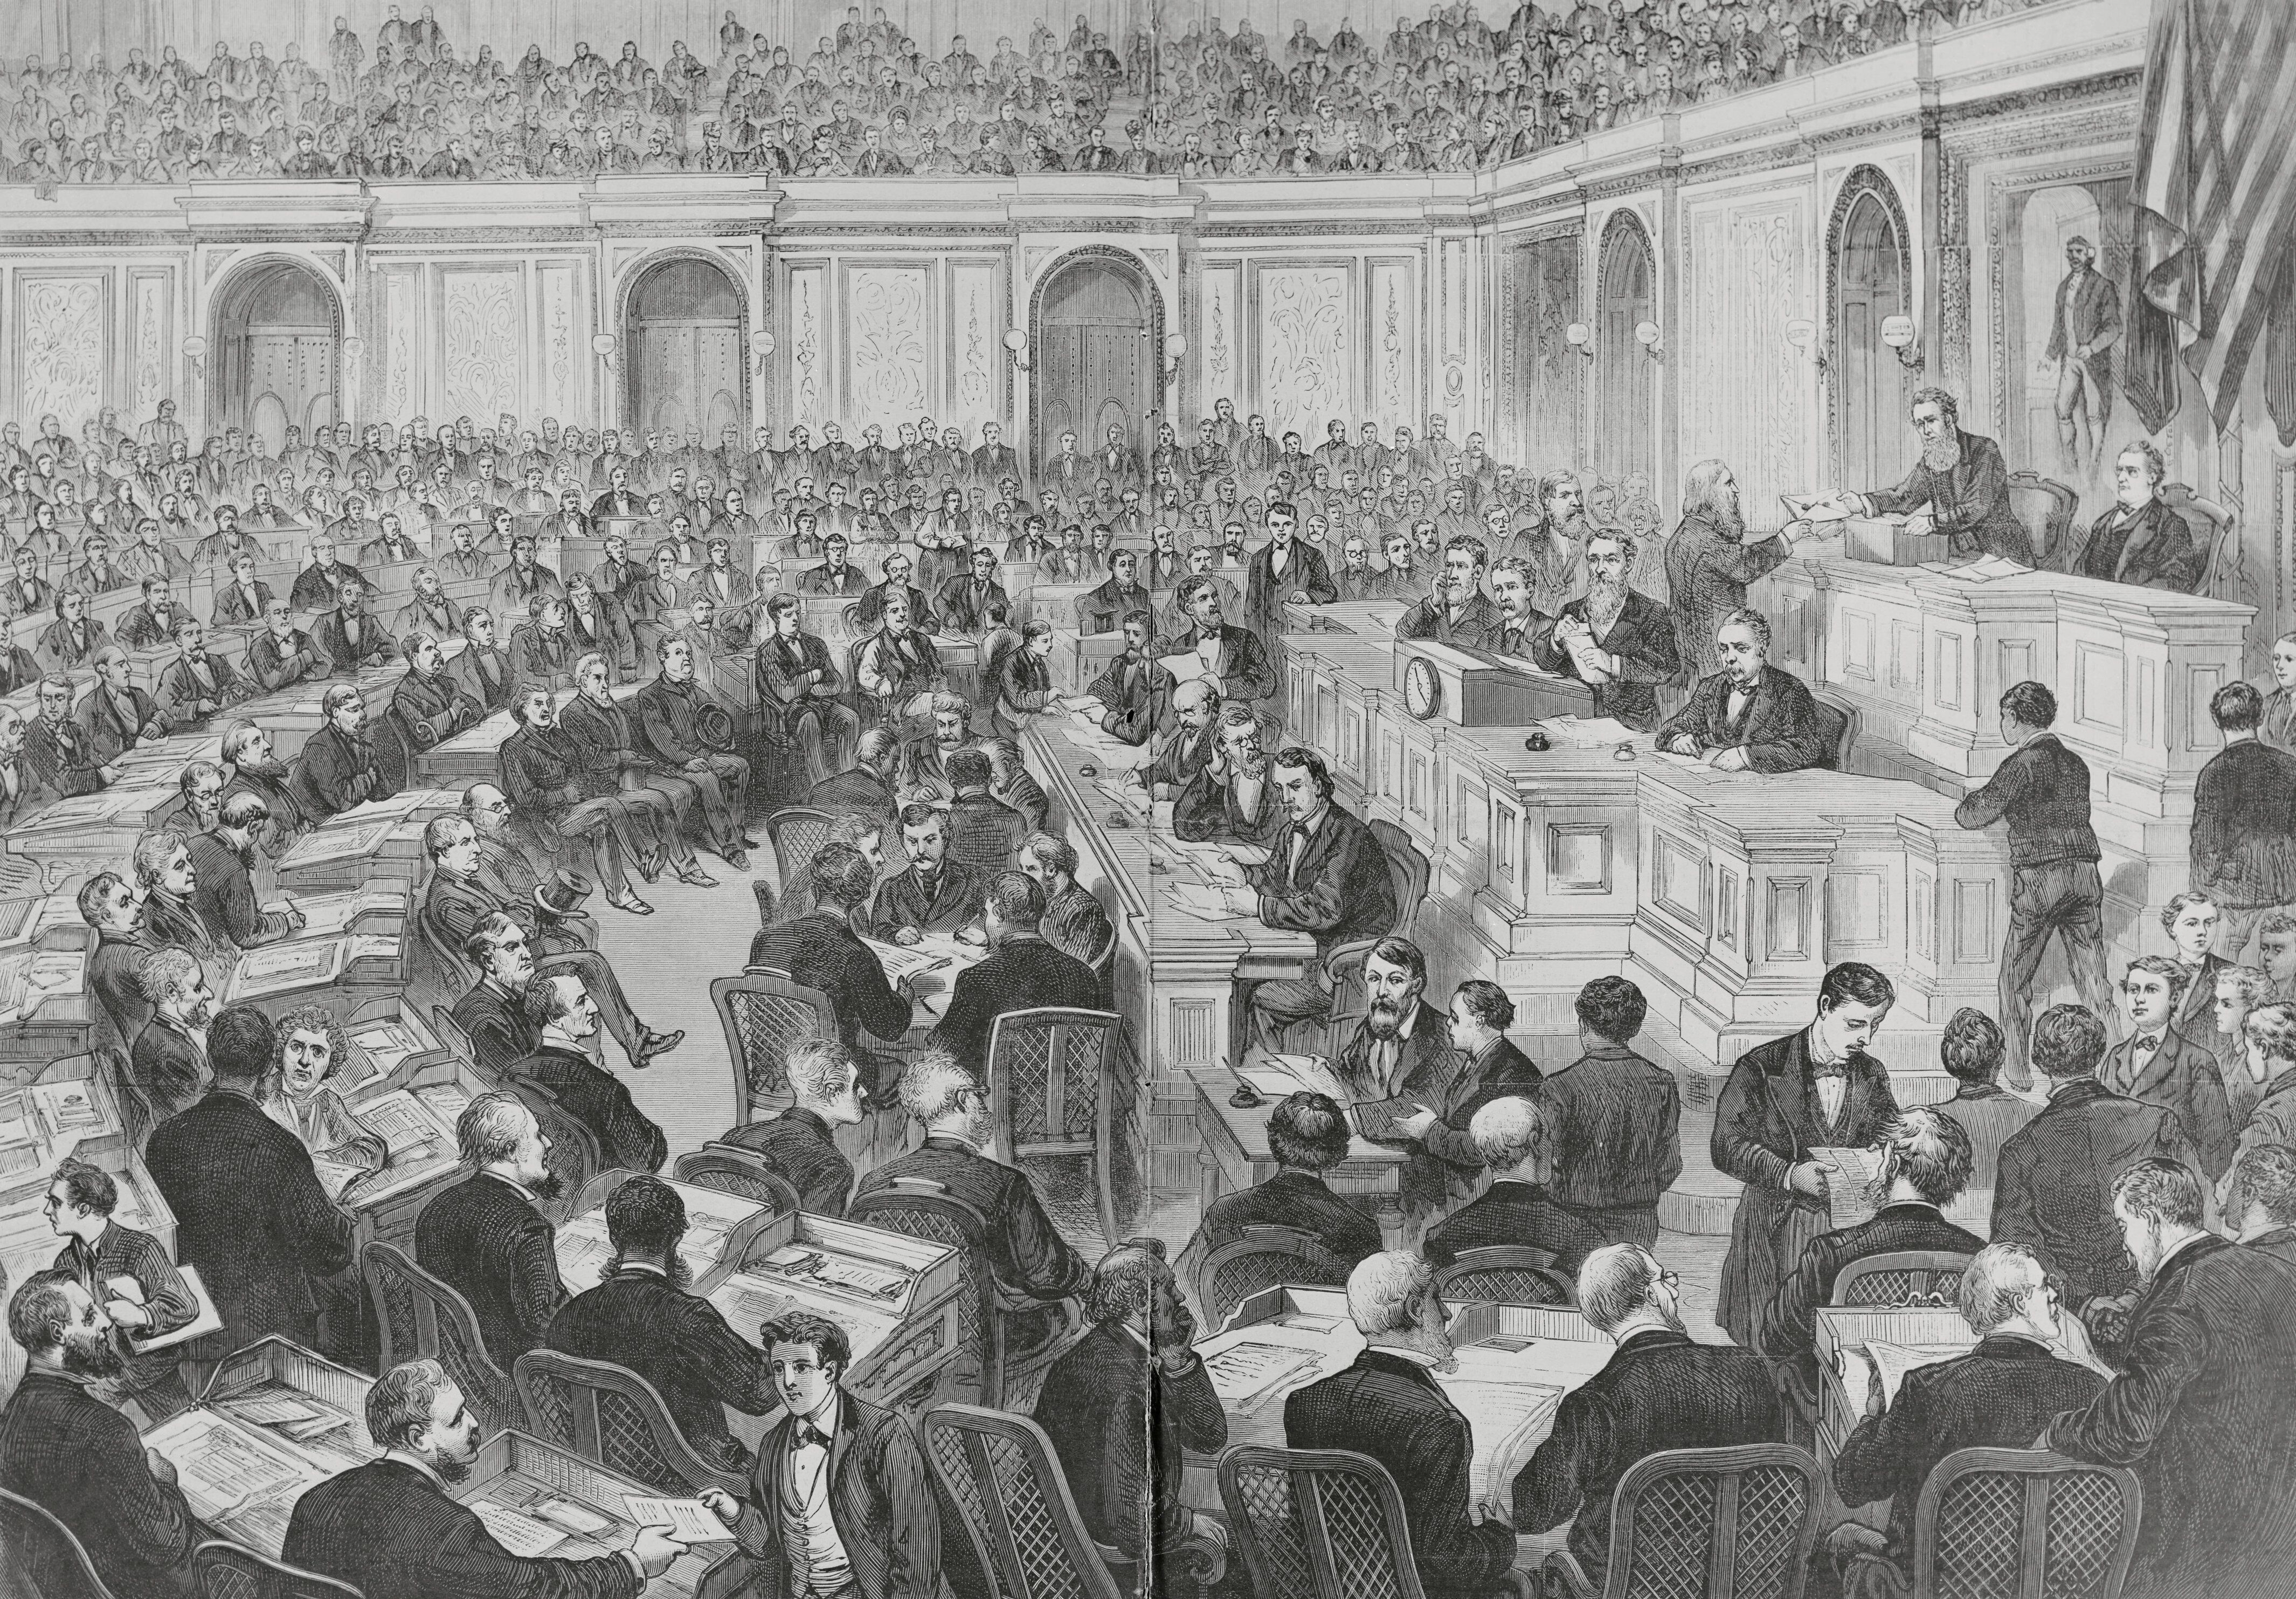 In the controversial presidential election, the outcomes in four states were in dispute, creating a stalemate that took weeks